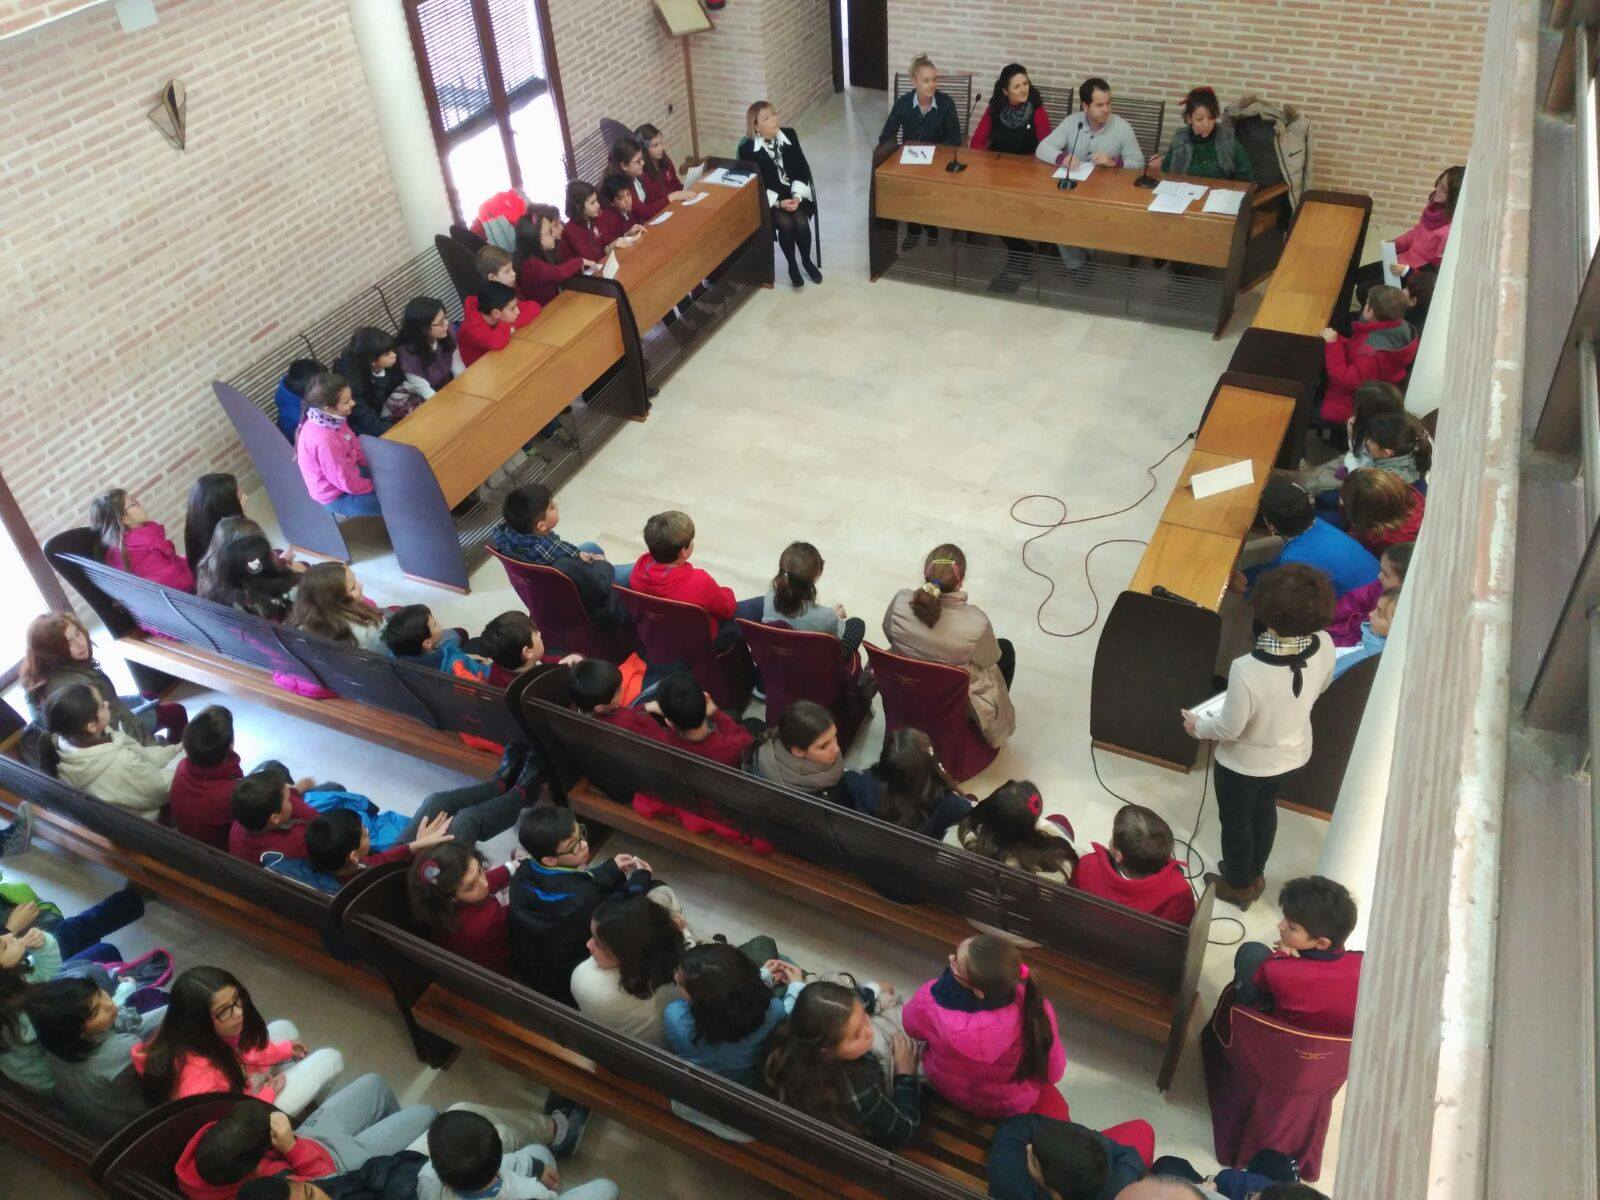 pleno escolar 2015 en herencia - 6